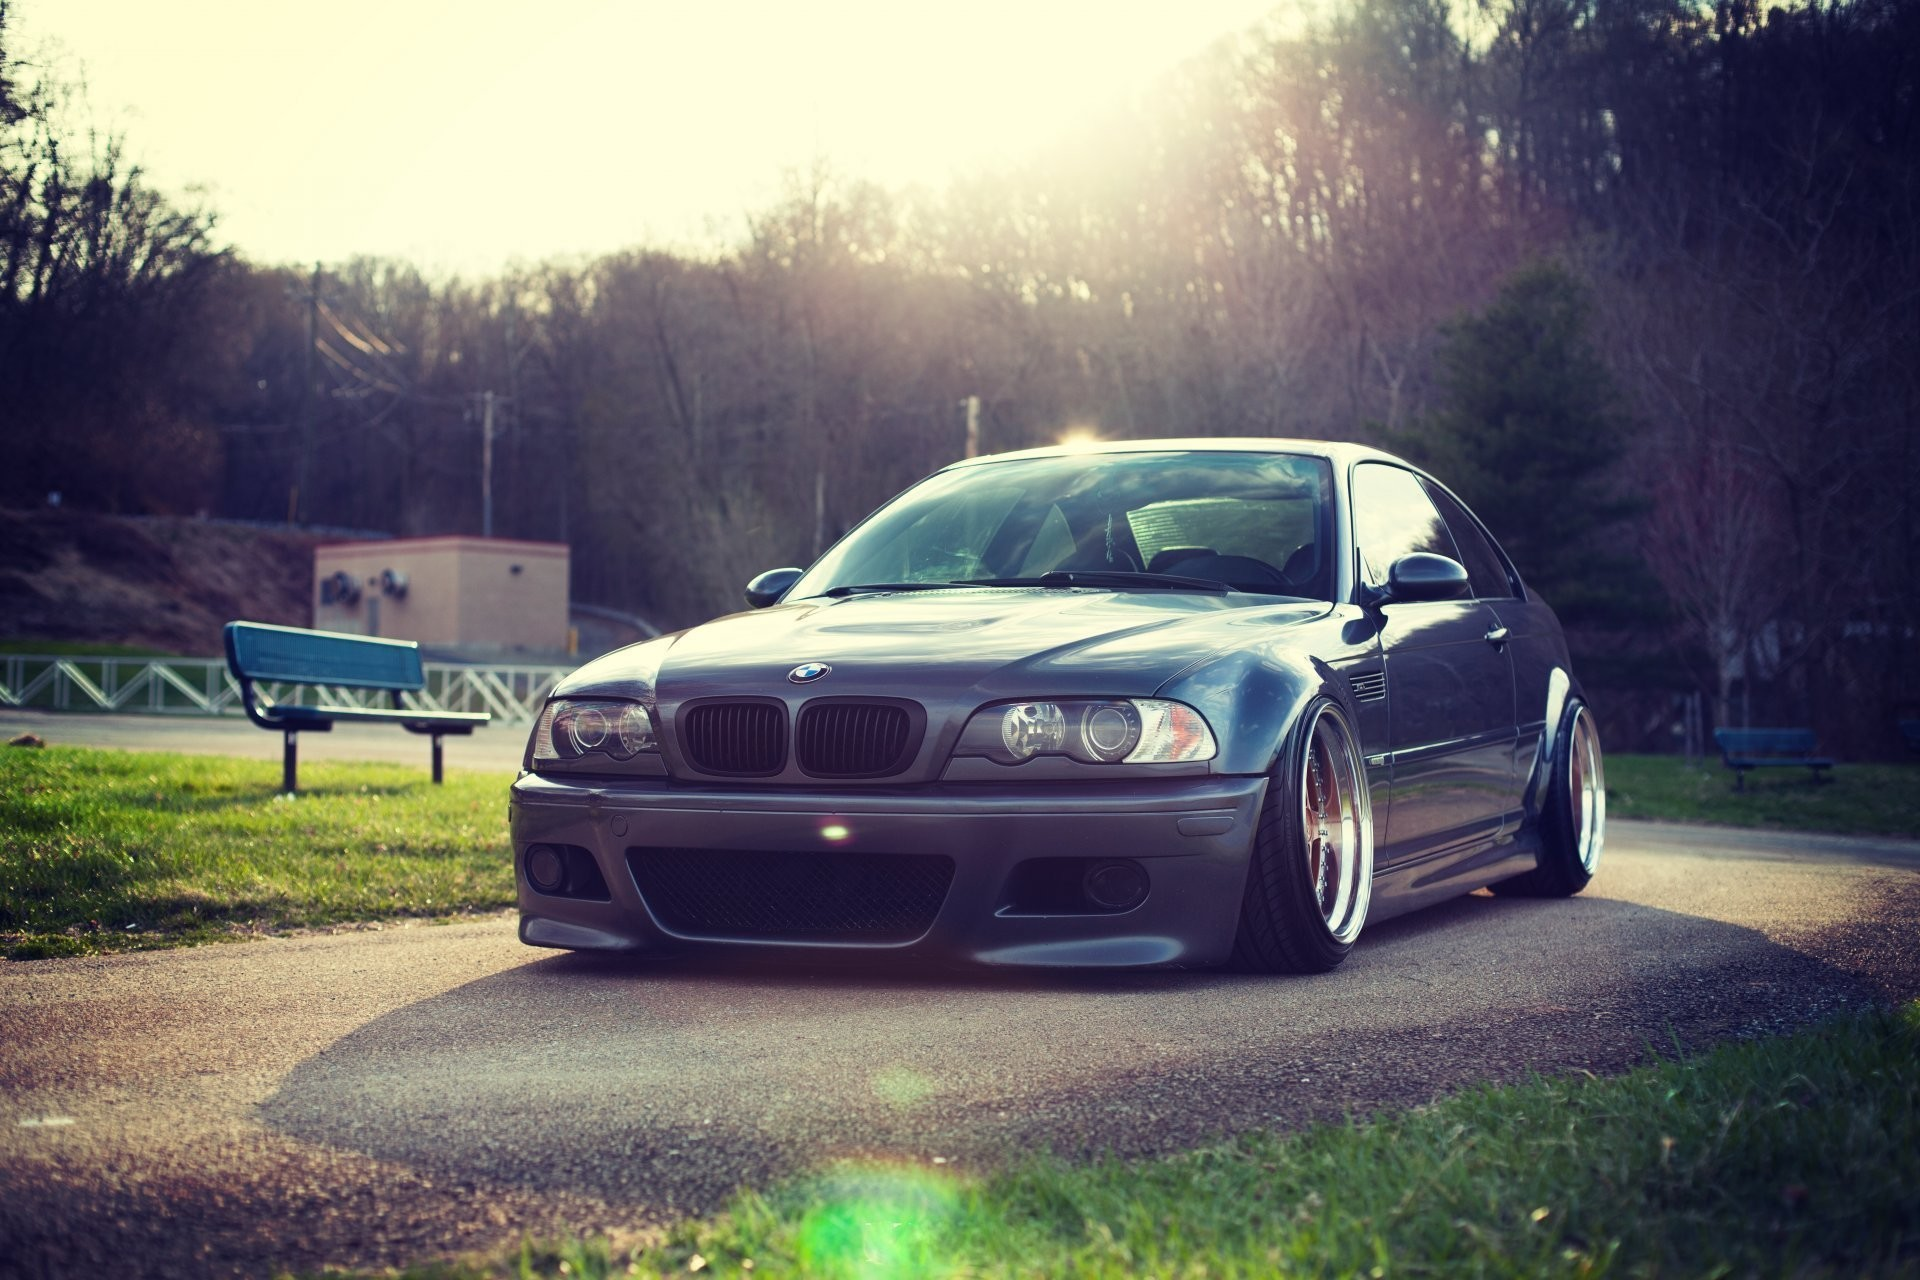 1920x1280 Bmw E46 M3 3 Serie Haltung HD Wallpaper Tapeten